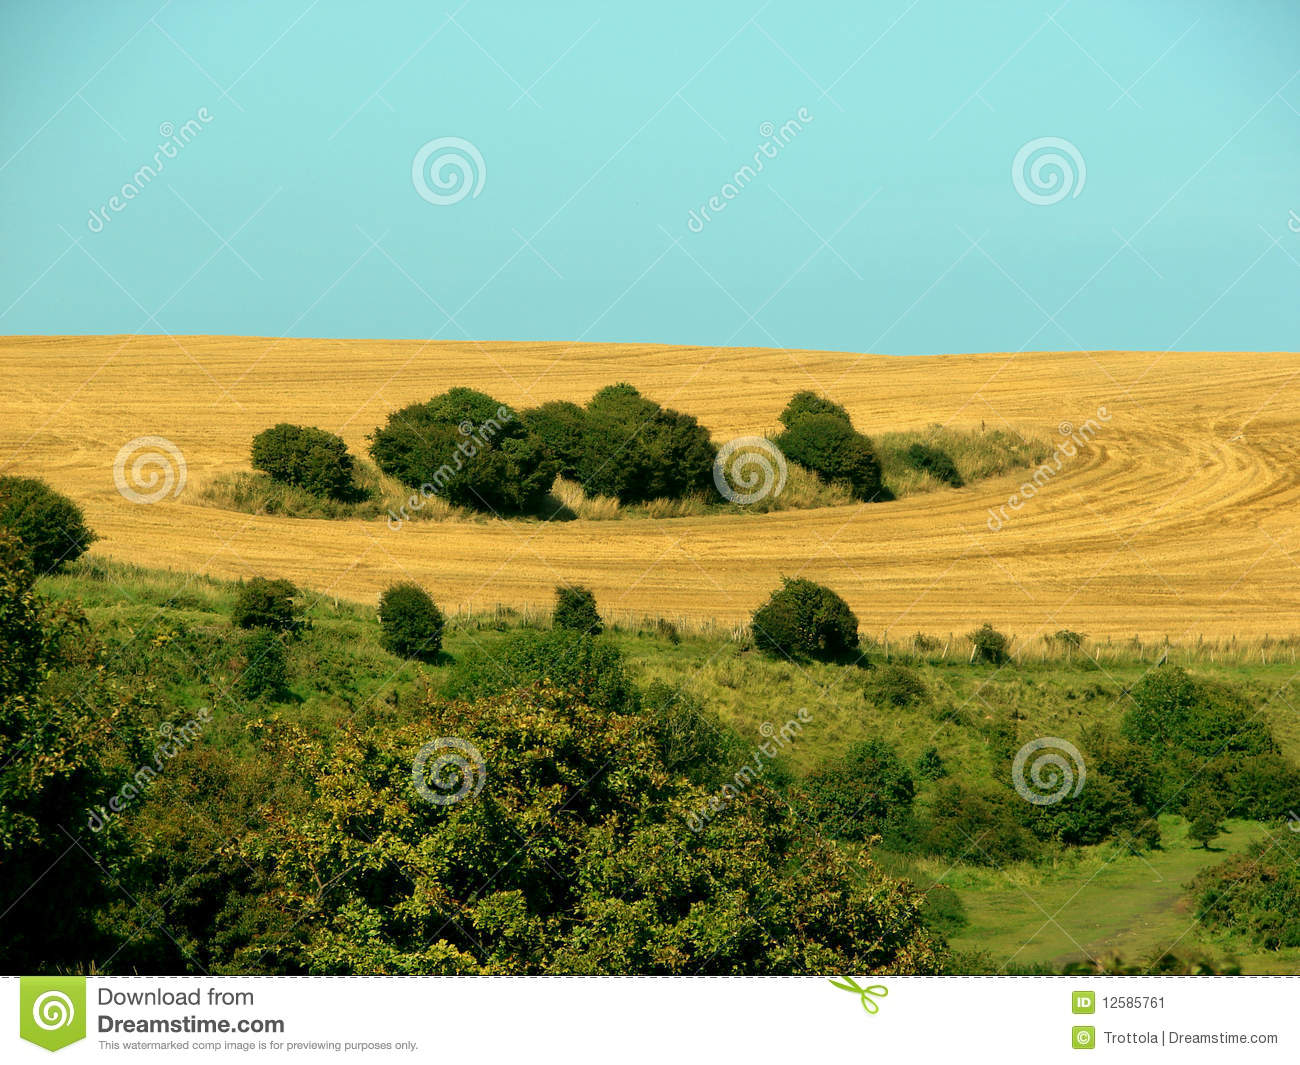 Landscaping Around A Group Of Trees : Circles around a group of green trees in the summer landscape kent